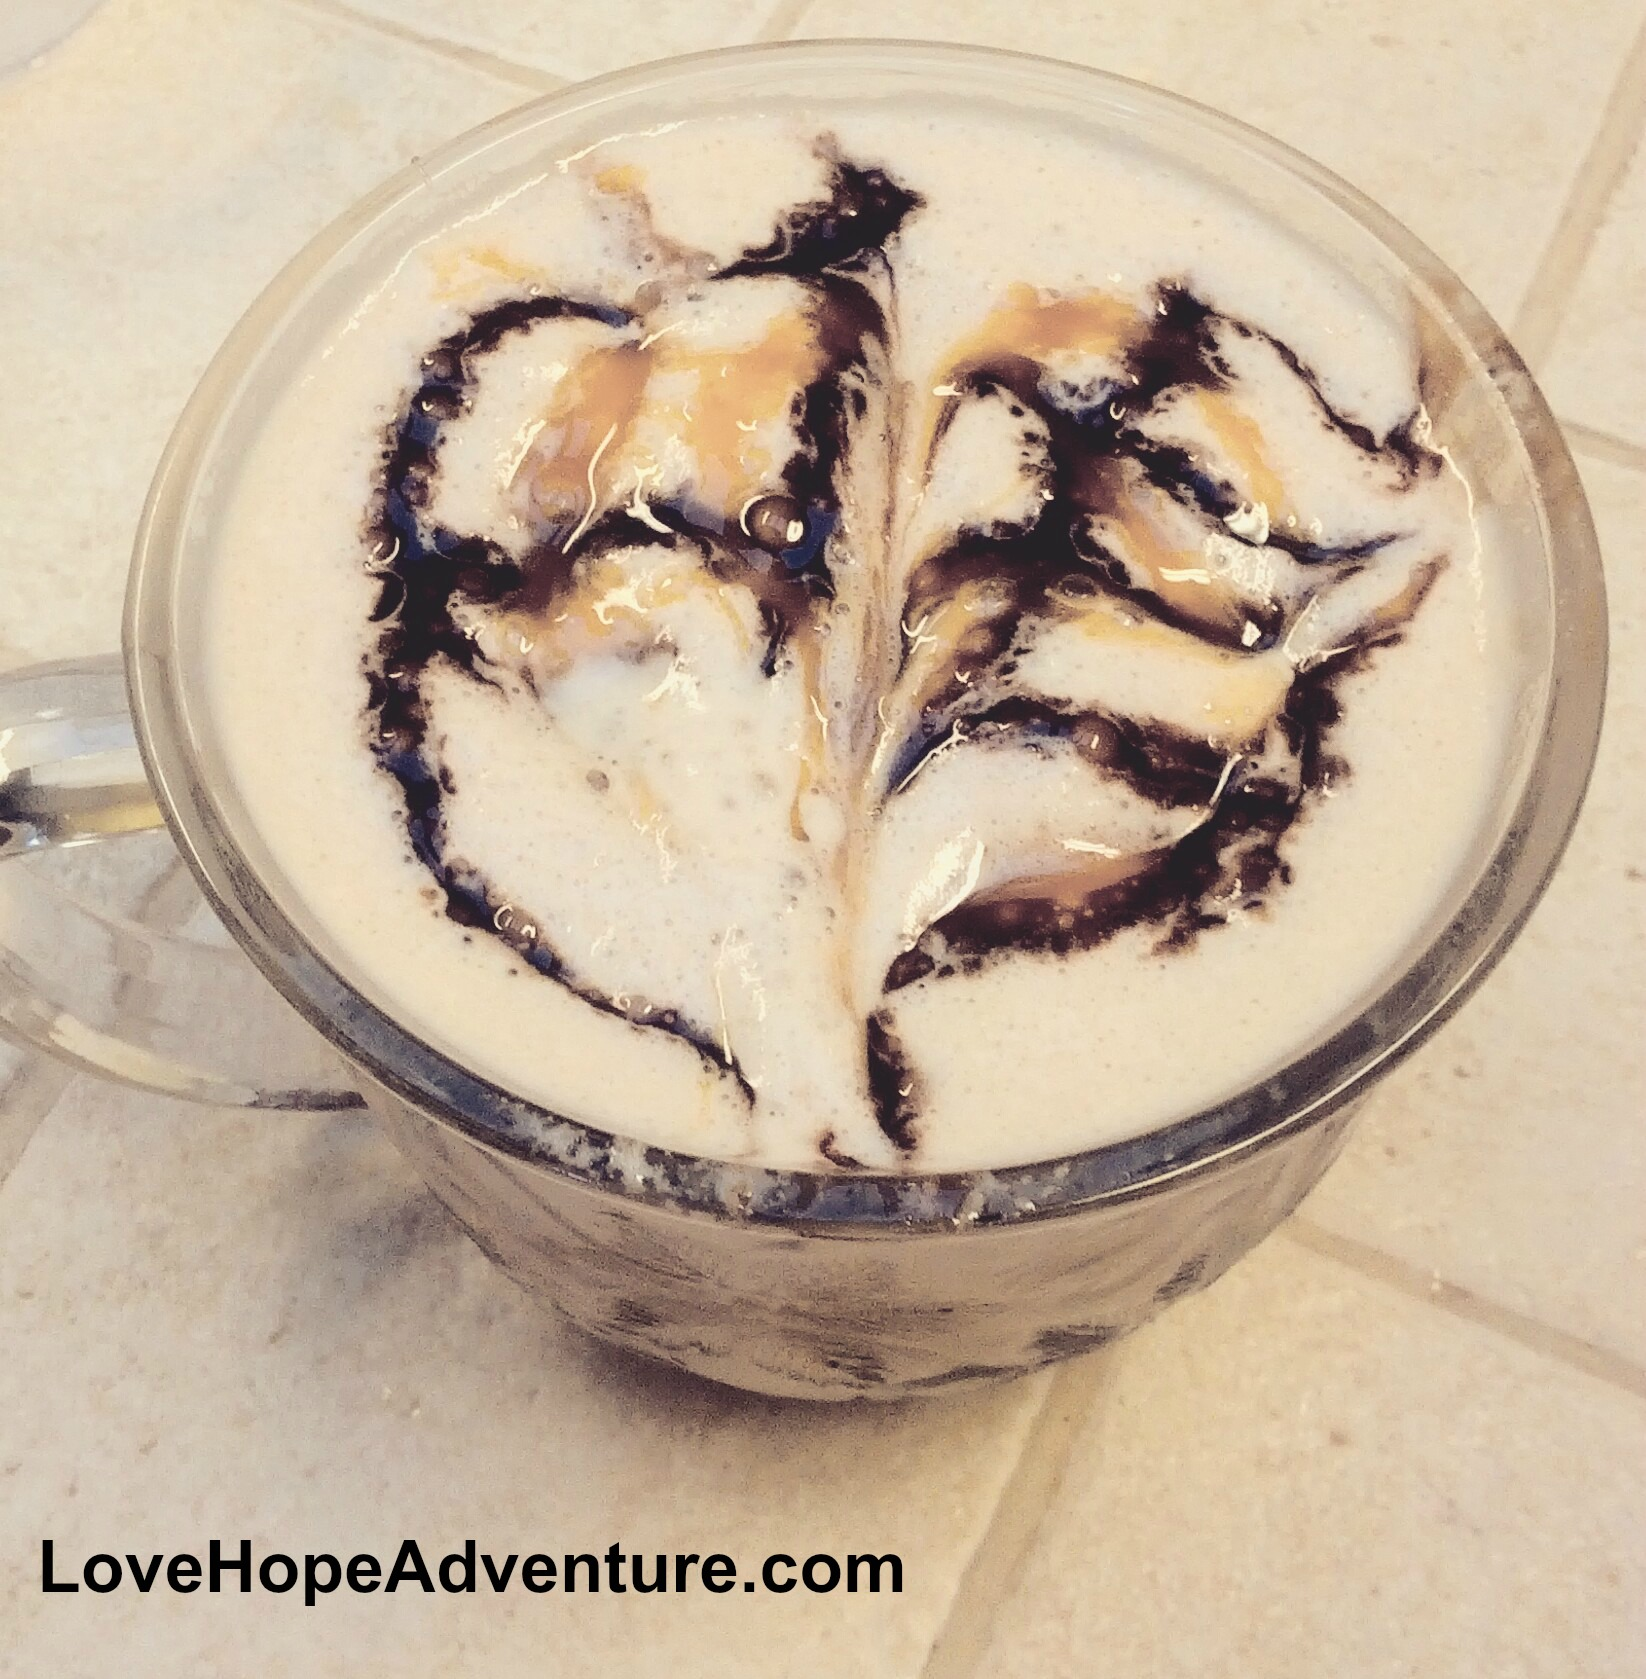 coffee lovehopeadventure